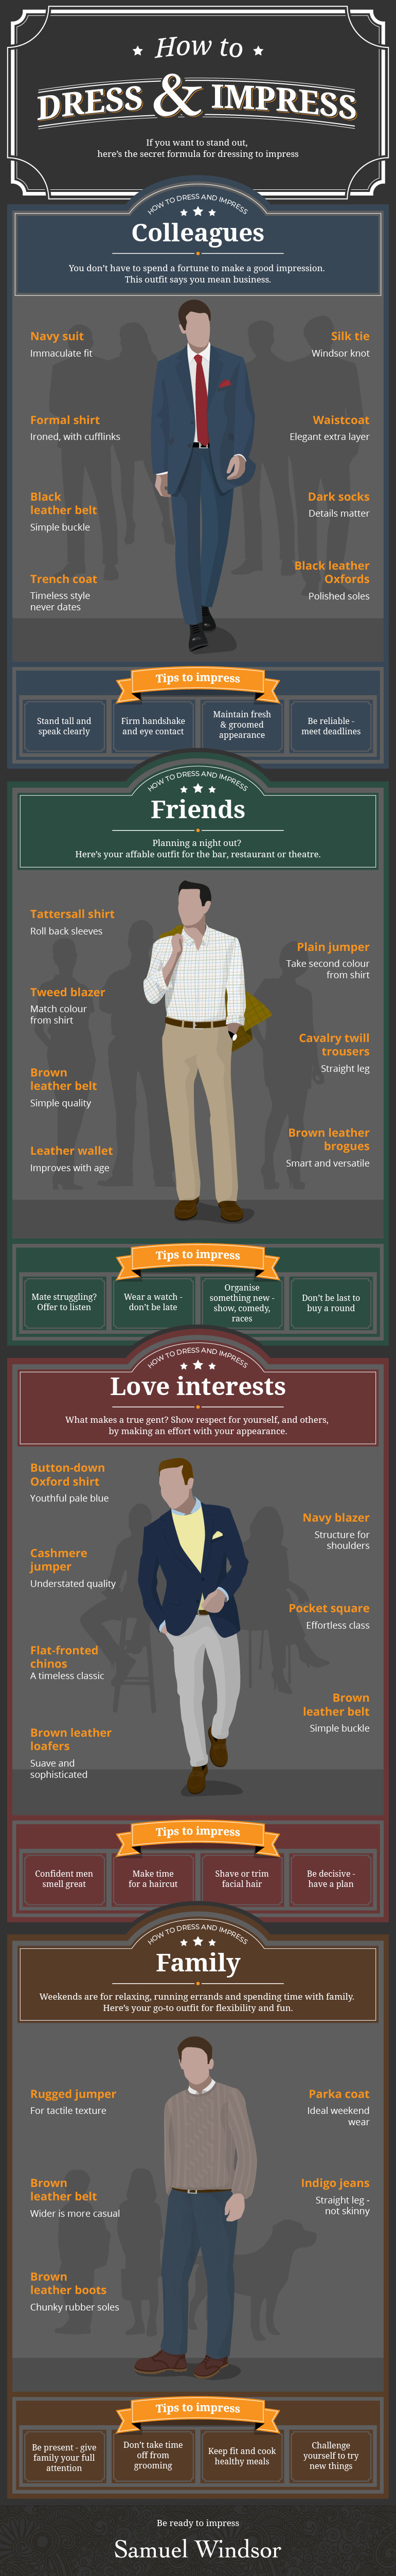 The Art of Being Well-Dressed and Making a Great Impression - Infographic